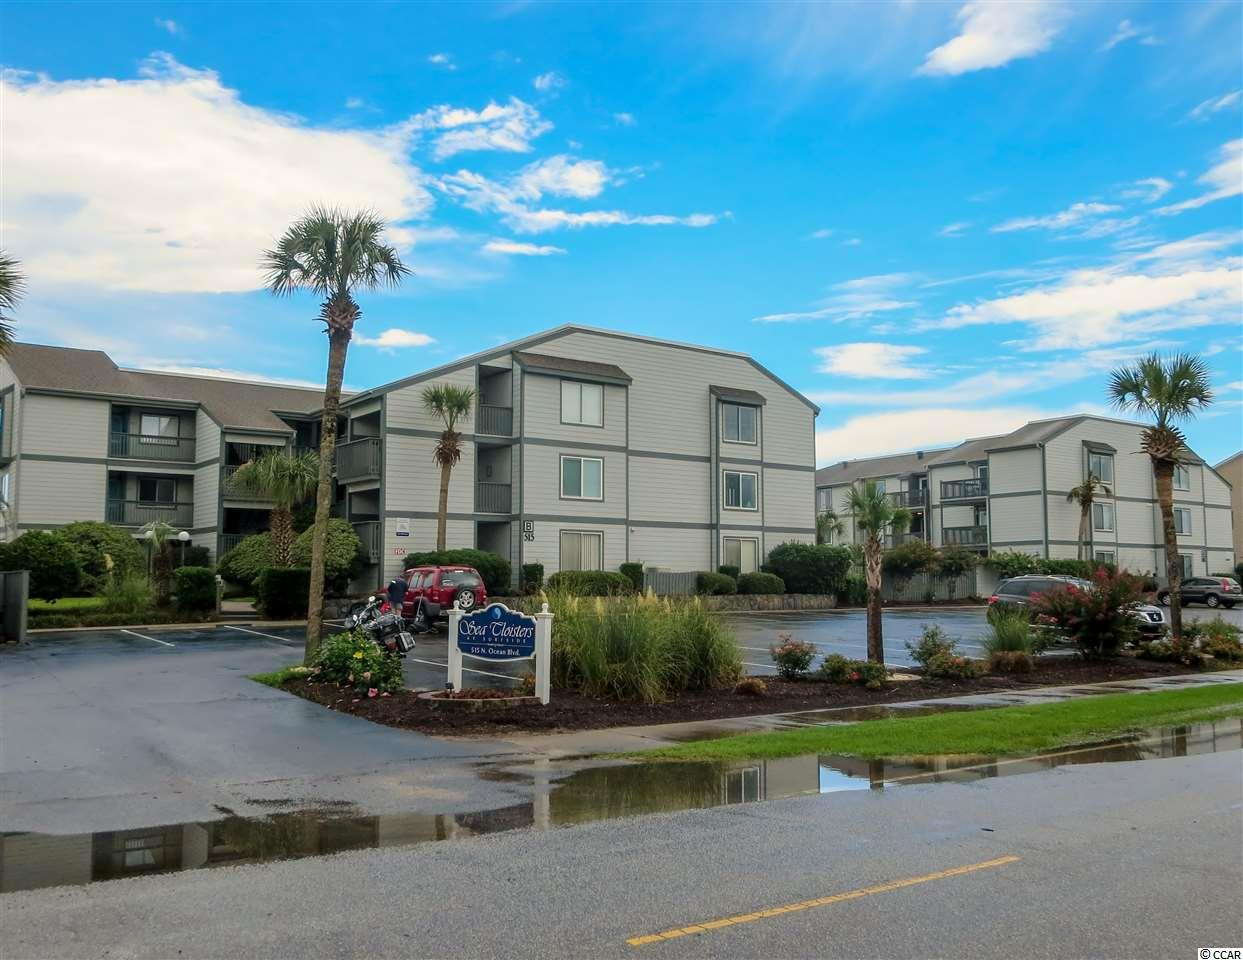 Closing scheduled for 12/6/19. For the discerning oceanfront buyer who wants superb views, amenities, location, and accommodations the only choice is 303B Sea Cloisters I. Positioned in the desirable north end of the Town of Surfside Beach this three bedroom, two bathroom, approximately 1123 heated square foot top floor corner condominium is ready to be your personal respite or income producing rental investment. Sea Cloisters I comprises over an acre of the oceanfront real estate including ample parking, a generous pool, and a well-maintained grounds and buildings. The interior features tile flooring in the living and bathroom areas, carpet in the bedrooms and fresh paint throughout the unit. With access from the living room and master bedroom, the 13x8 balcony offers uninterrupted panoramic views from Myrtle Beach to Garden City Beach, perched above one of the most beautiful stretches of beach along the Grand Strand. This property sells turnkey, wholly furnished ready for you to enjoy. Why rent when you can own your very own piece of the beach.